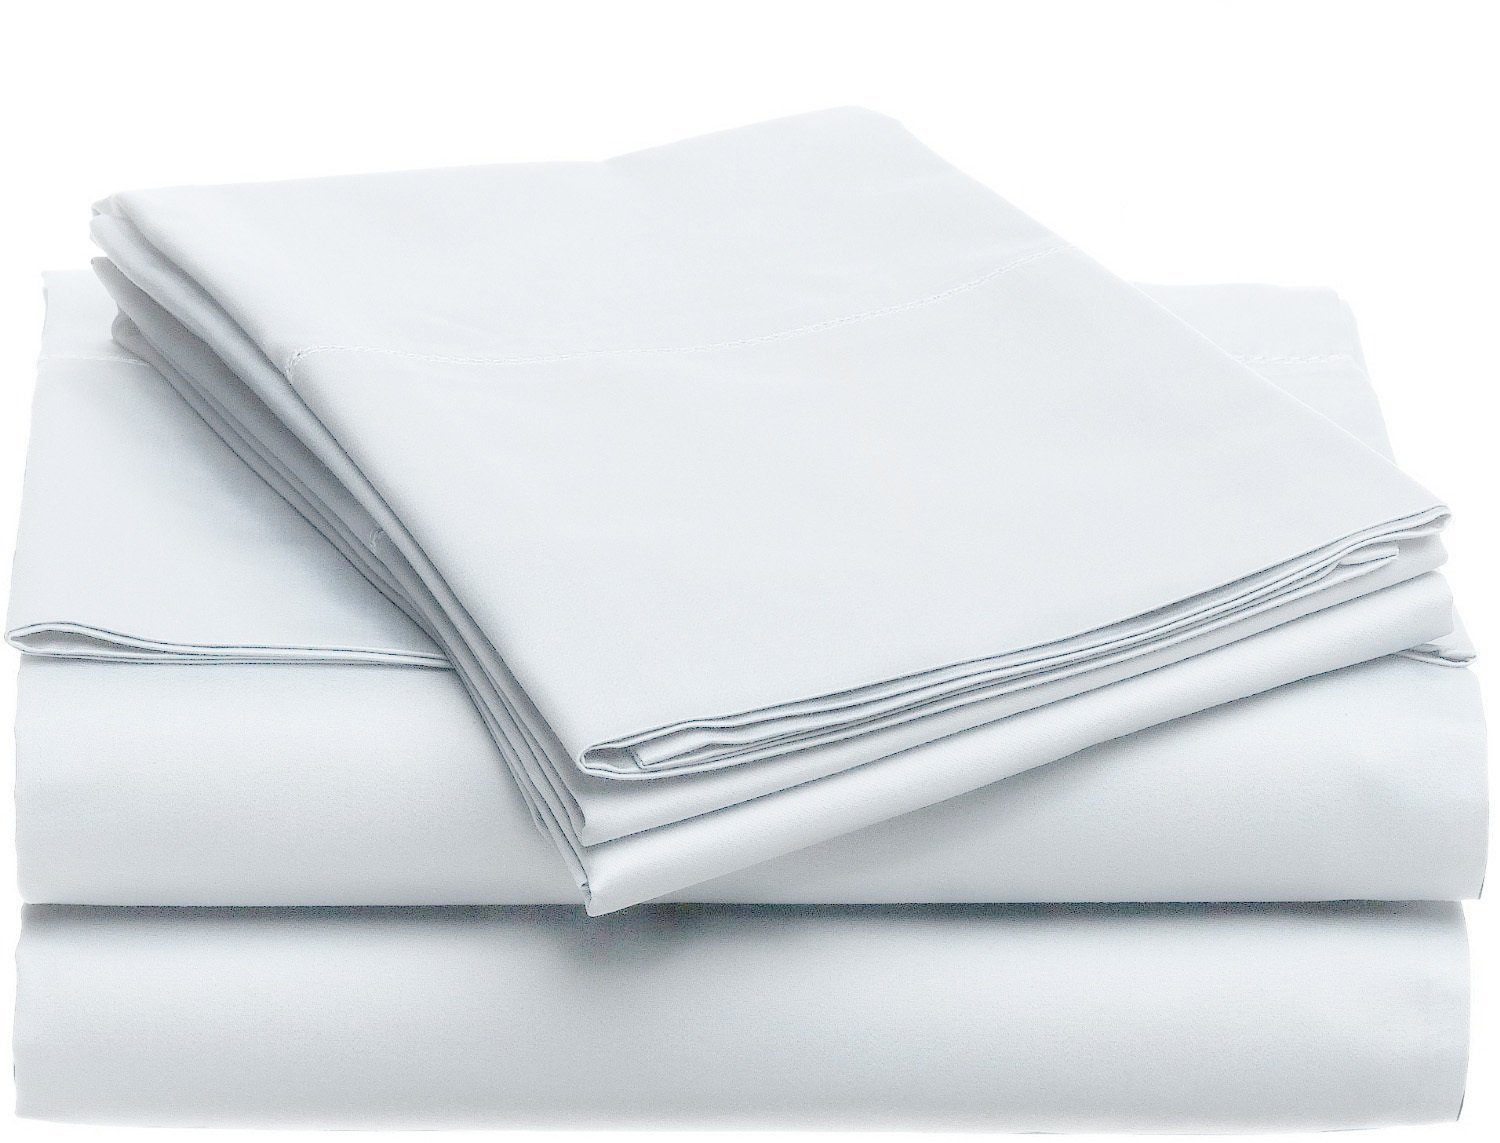 Luxury Home Super-Soft 1600 Series Double-Brushed 6 Pcs Bed Sheets Set (King, White) by Luxury Home (Image #2)